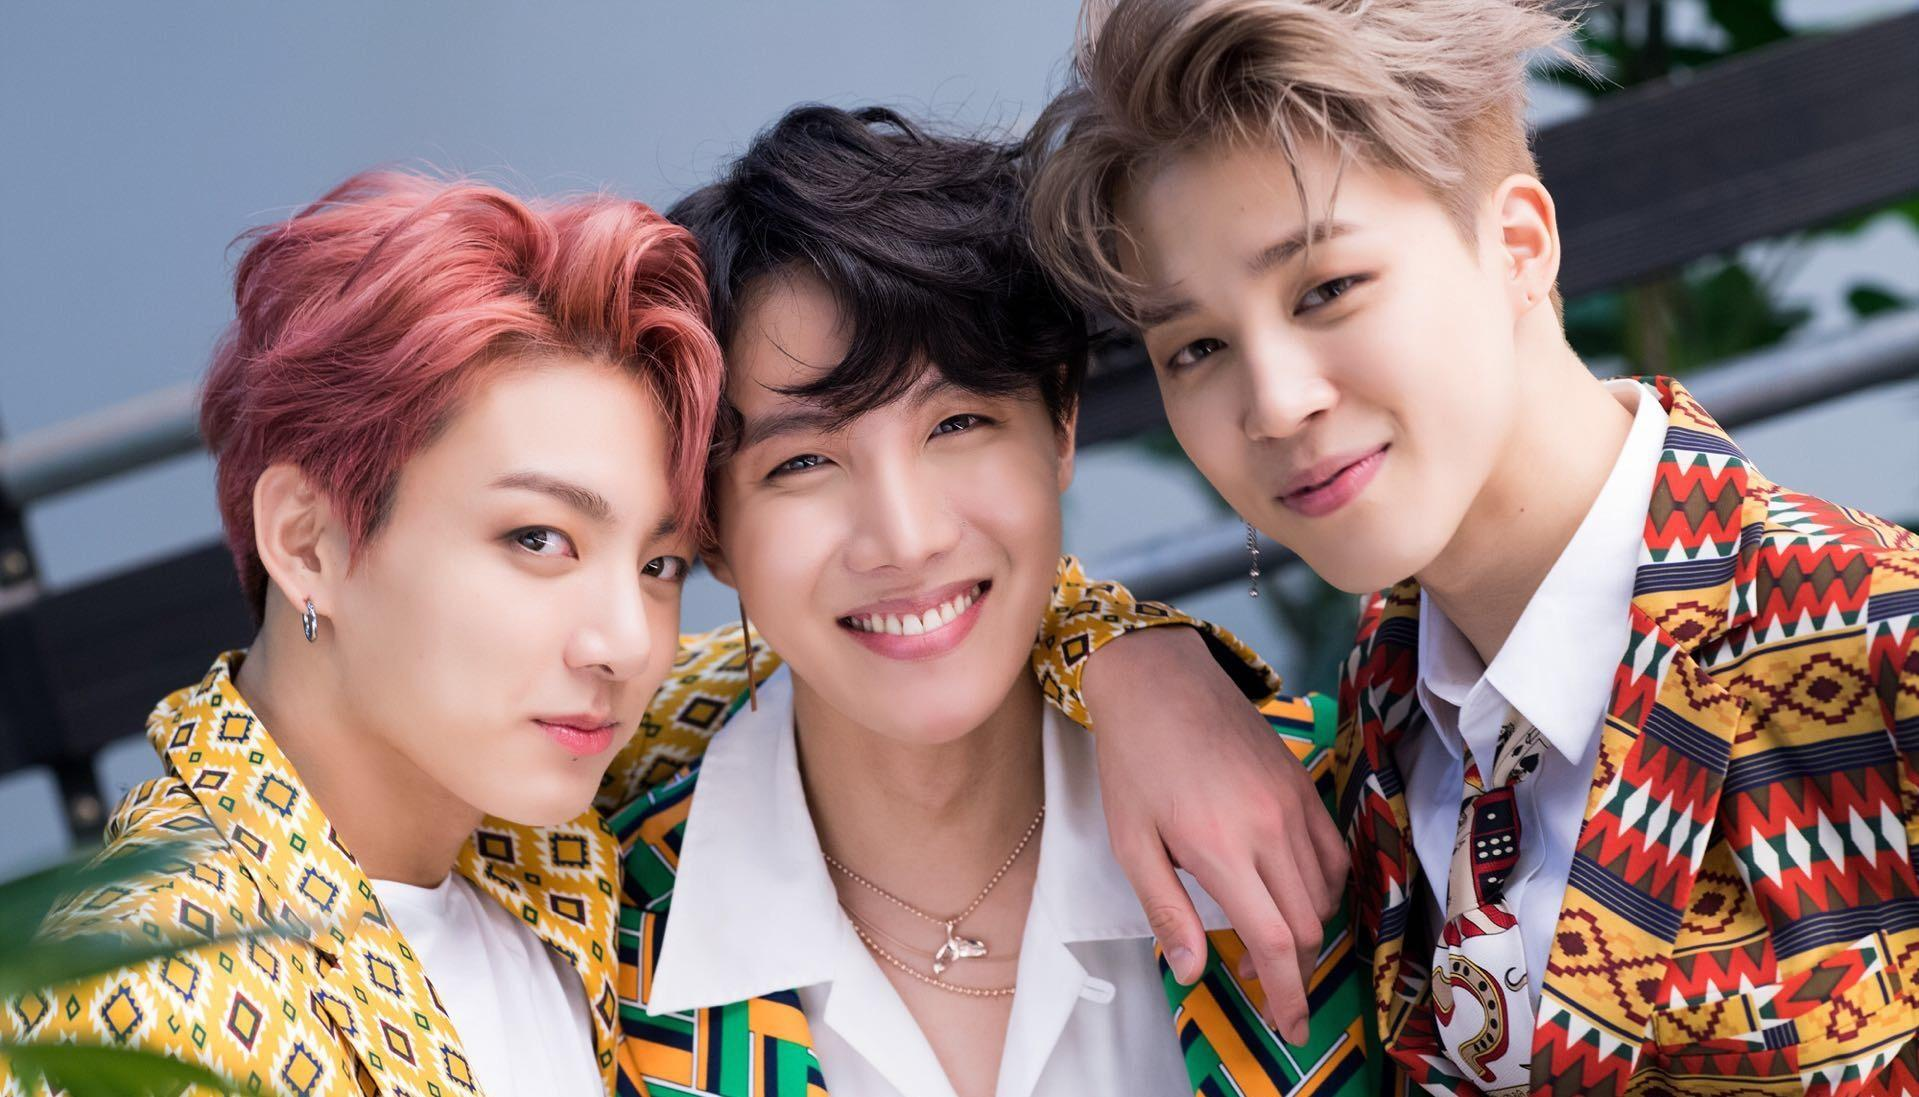 BTS images Jhope Jimin and Jungkook bts 41539125 1919 1097 HD 1919x1097